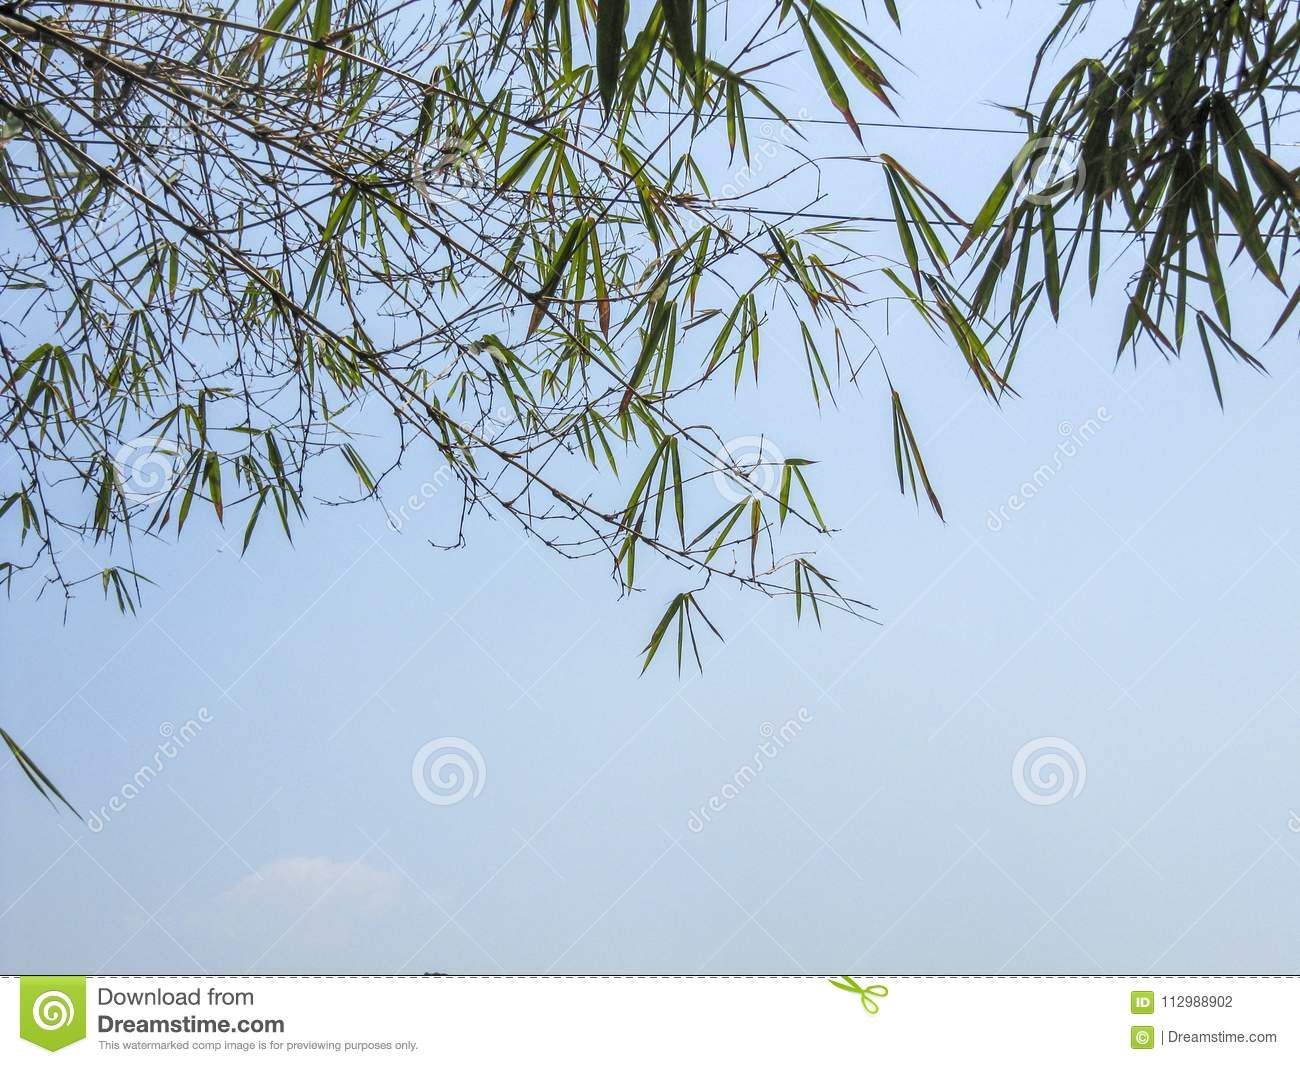 Blue skies beyond bamboo canapy